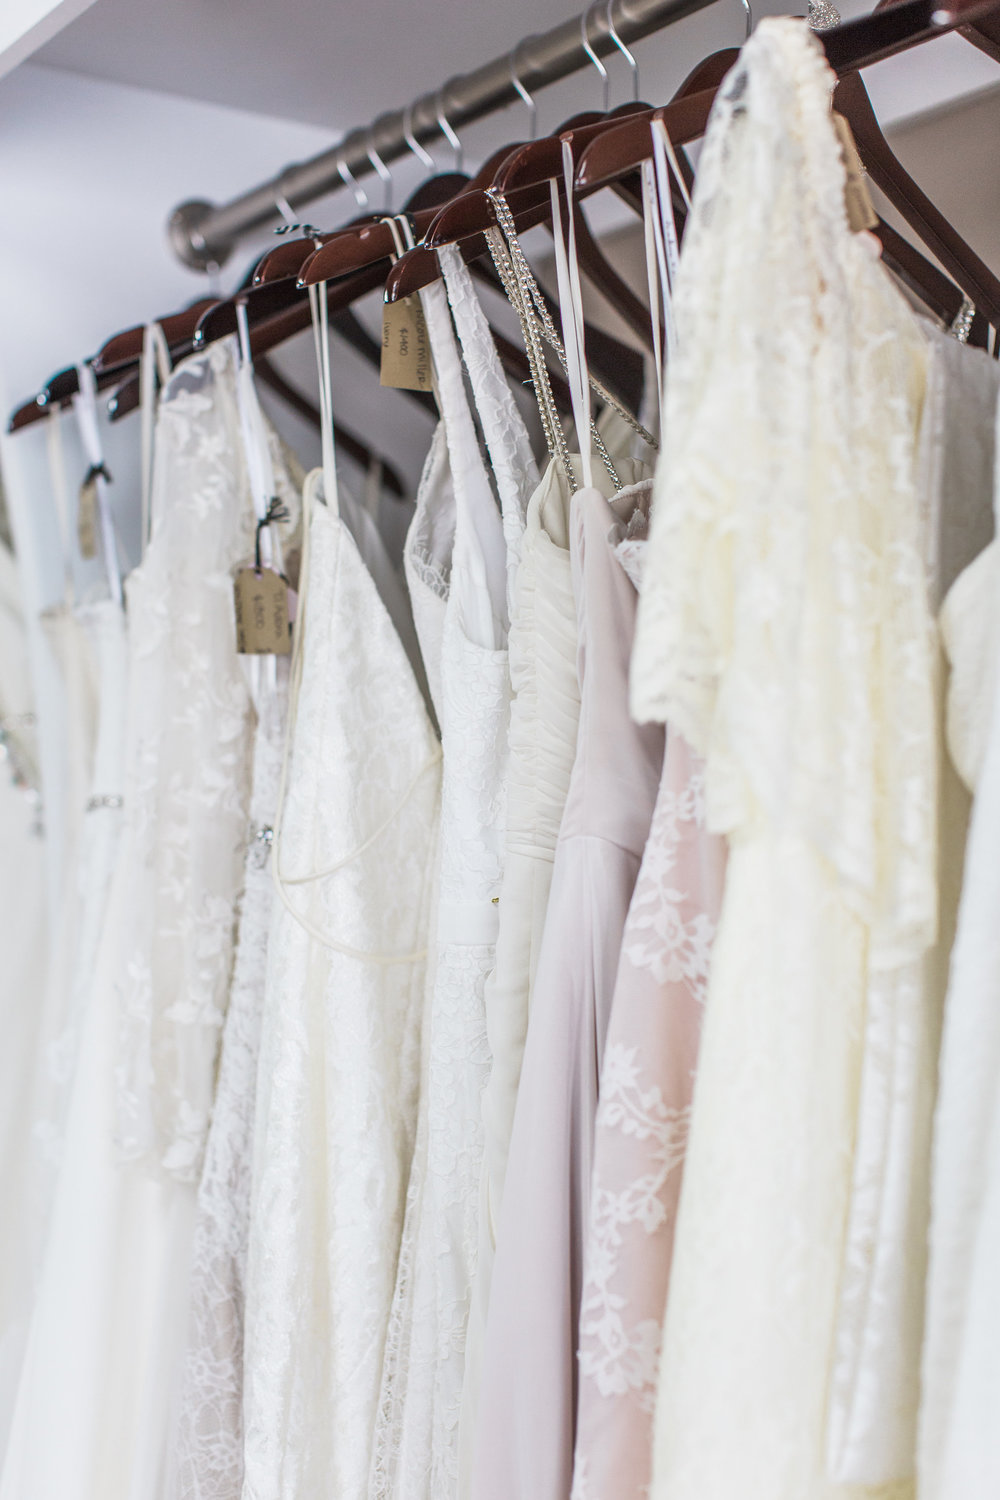 savannah-bridal-boutique-savannah-affordable-wedding-dresses-ivory-and-beau-designer-wedding-dresses-daughters-of-simone-ti-adora-nicole-miller-sarah-seven-anna-campbell-lena-medoyeff-savannah-wedding-planner.jpg